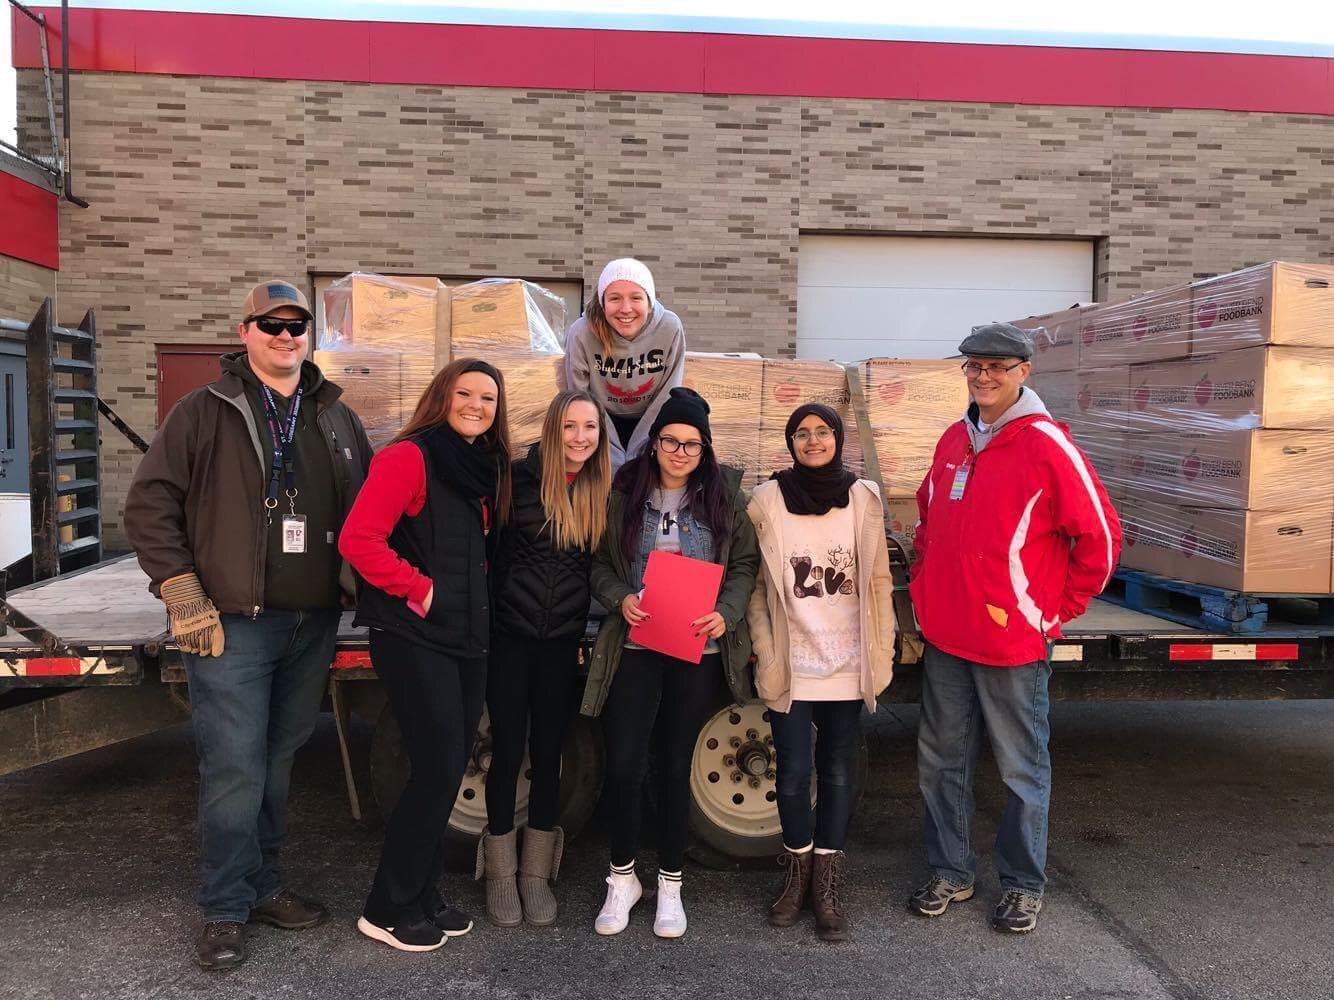 Members of West's student senate loaded thousands of pounds in food donations to take to the River Bend Food Bank on Thursday, Nov. 9.